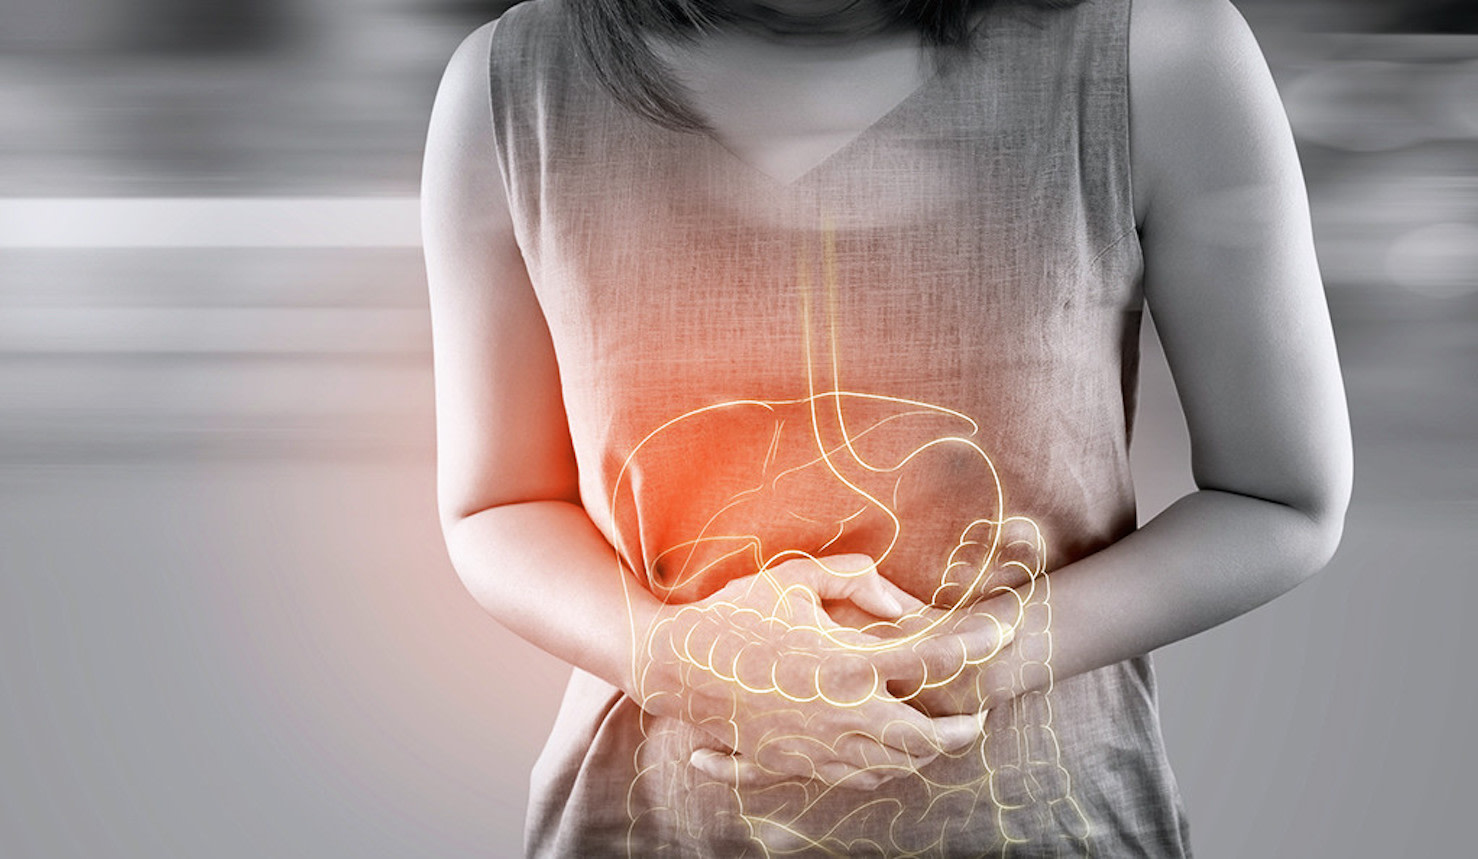 Deadlier colon cancer develops differently in women and men